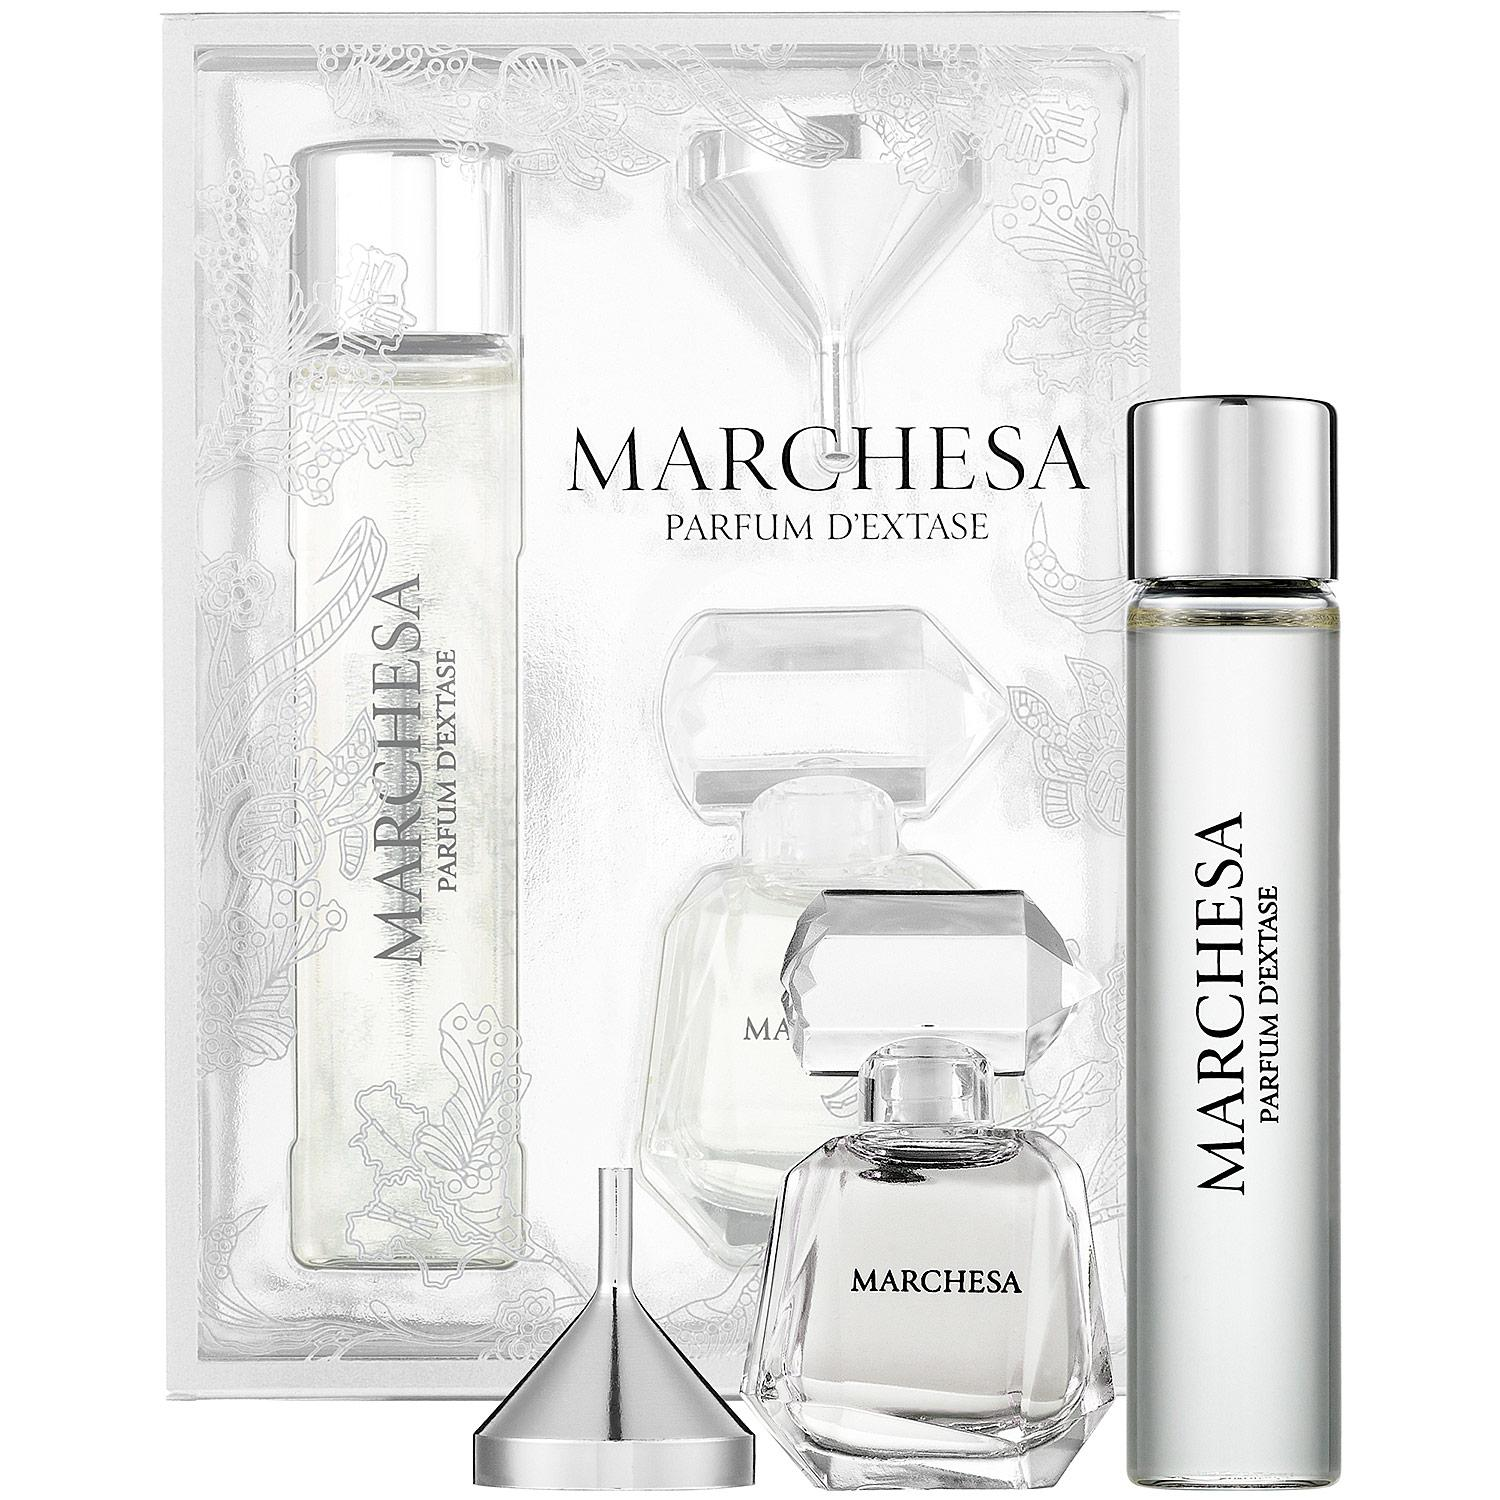 MARCHESA PARFUM D'EXTASE Travel Duo